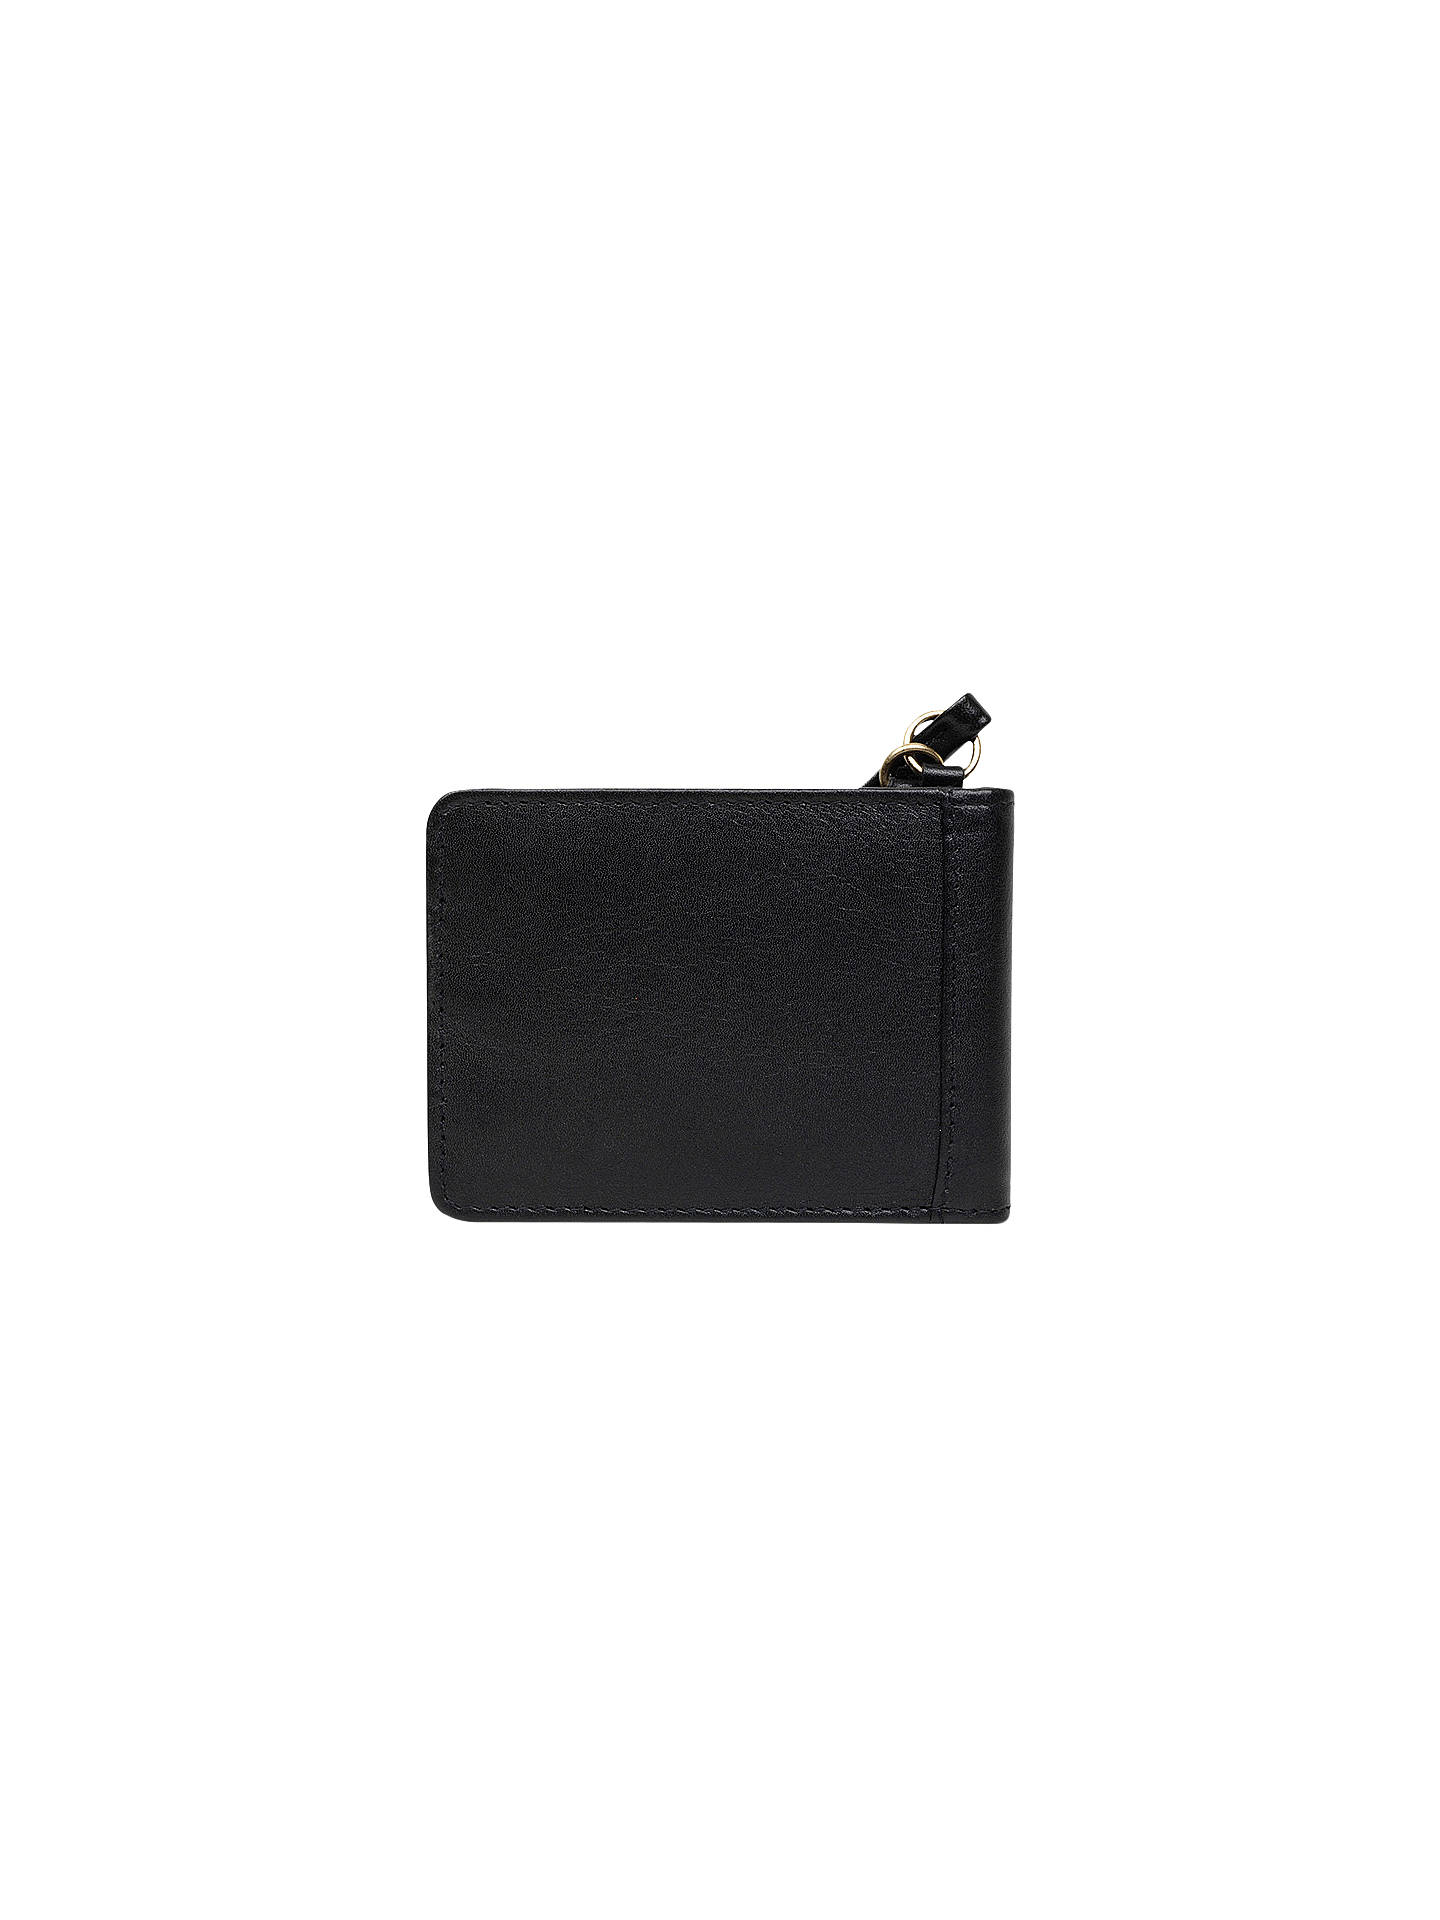 BuyRadley Southwark Park Leather Bag Charm, Black Online at johnlewis.com